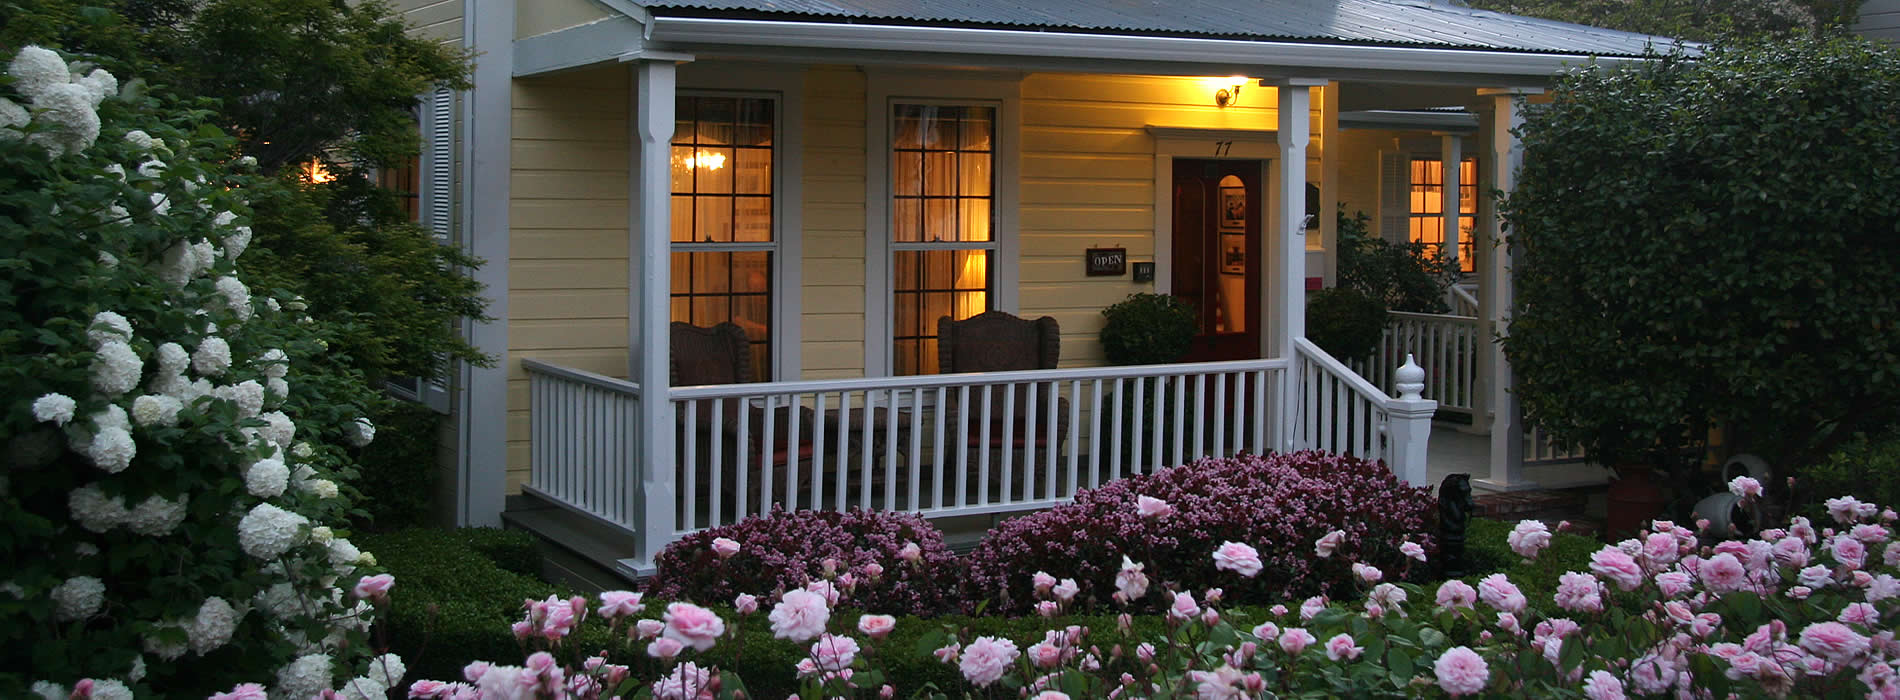 Sutter Creek Bed And Breakfast